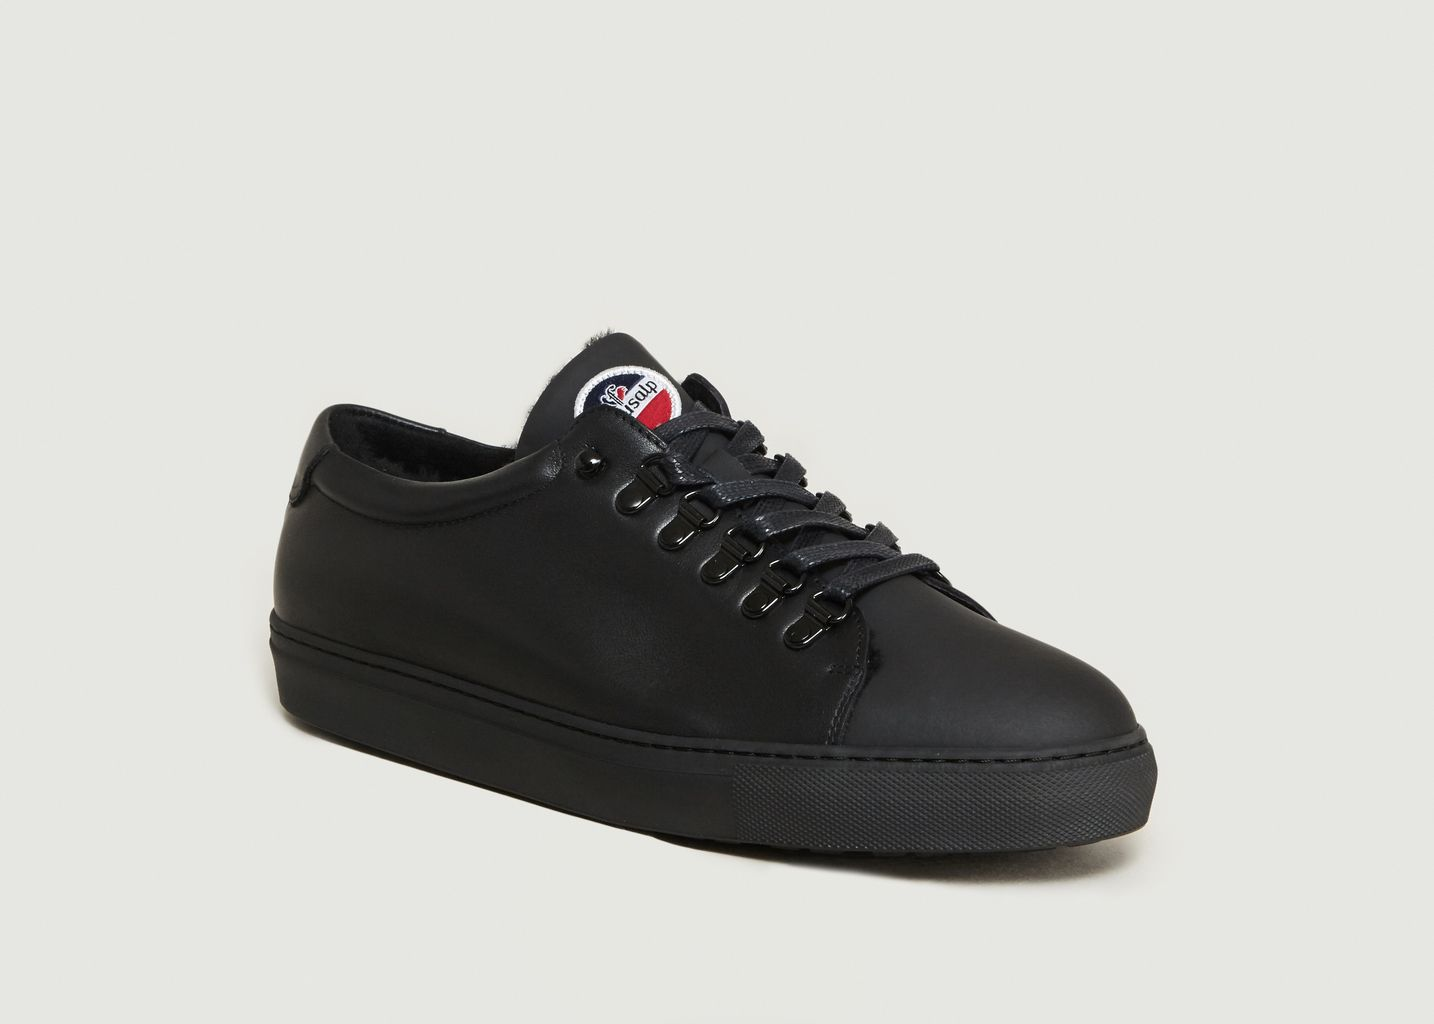 Sneakers Edition 3 x Fusalp - National Standard